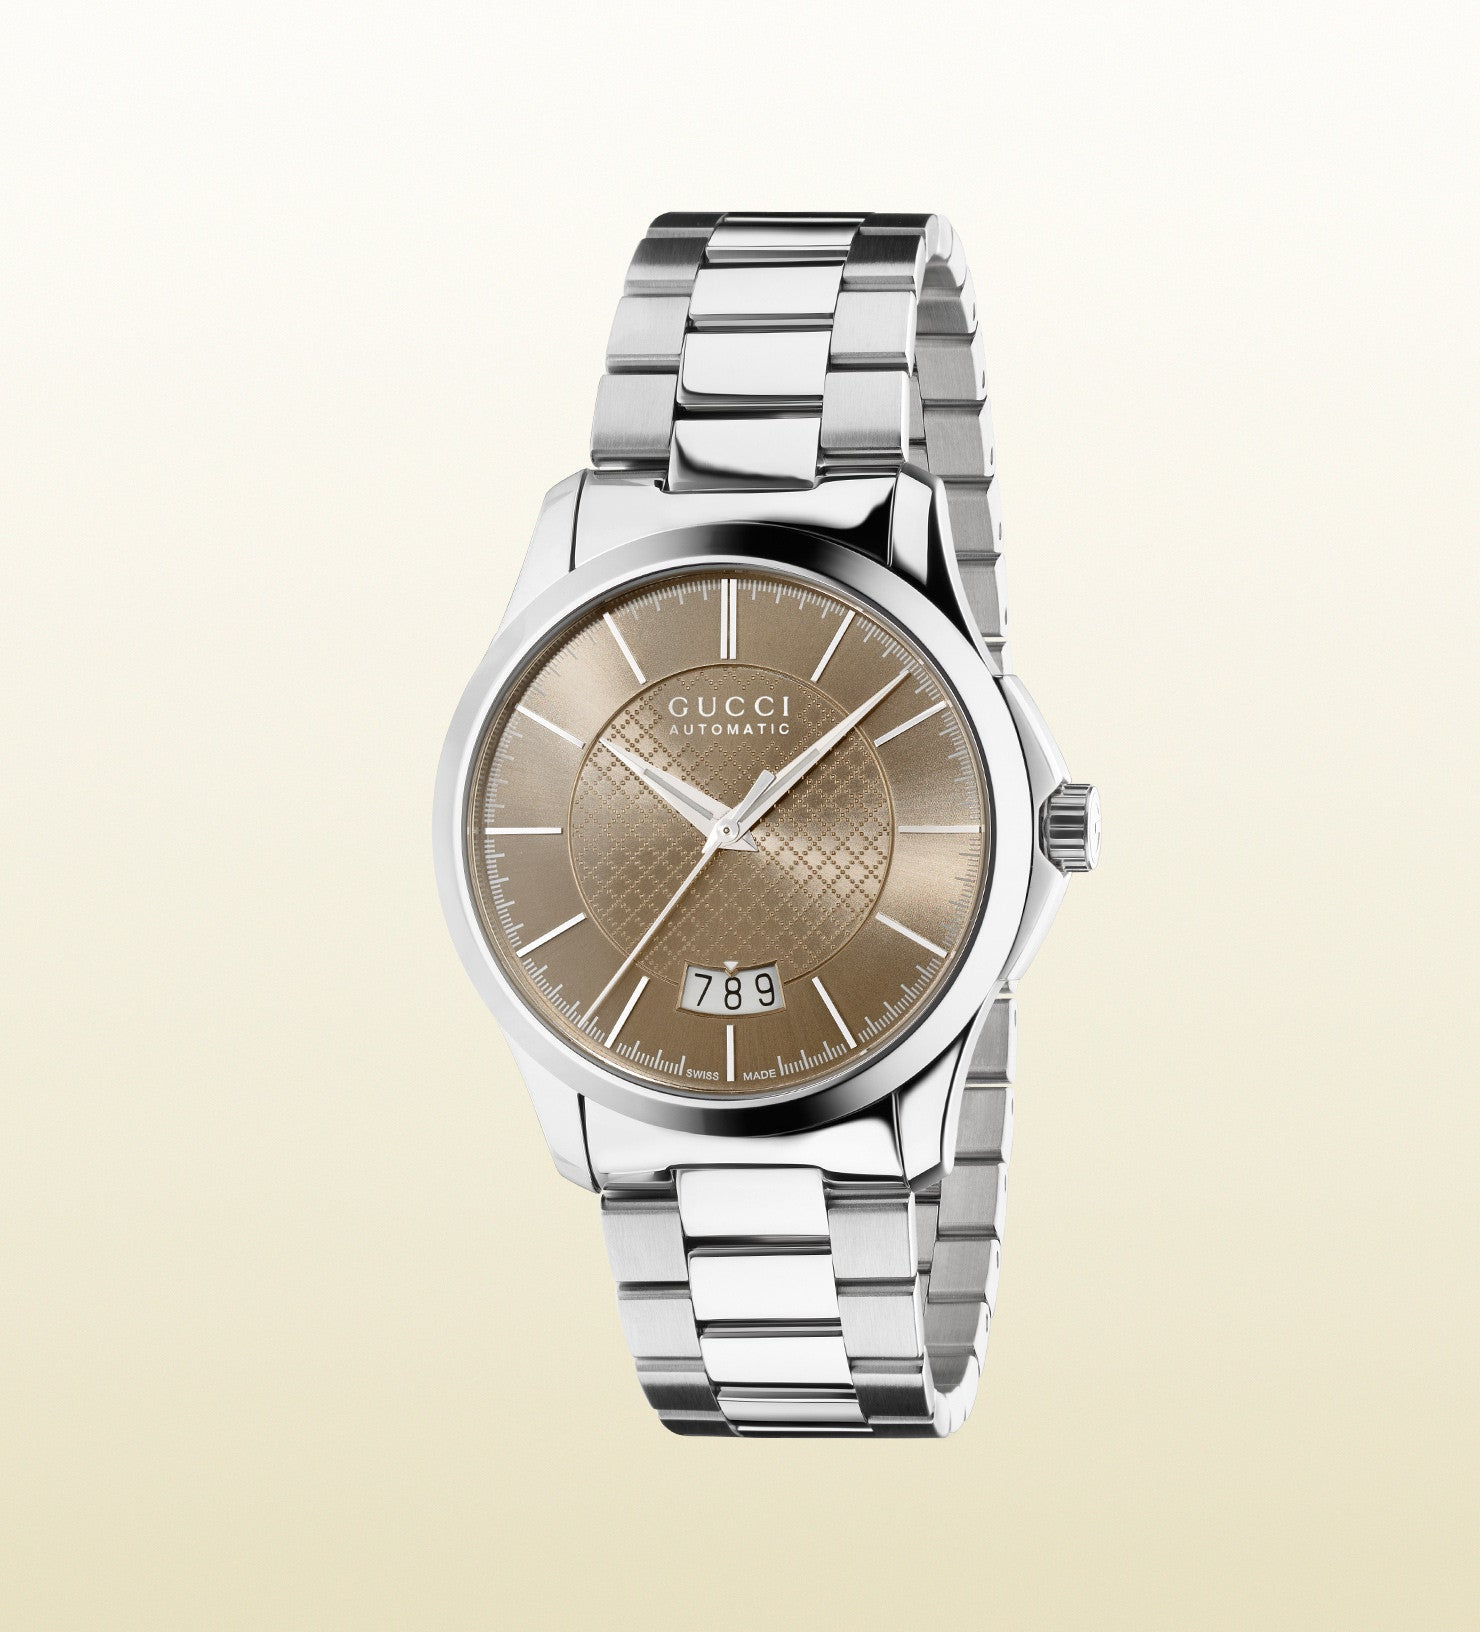 f49a0d97095 Gucci G-Timeless Medium Slim Stainless Steel YA126431 (38mm ...